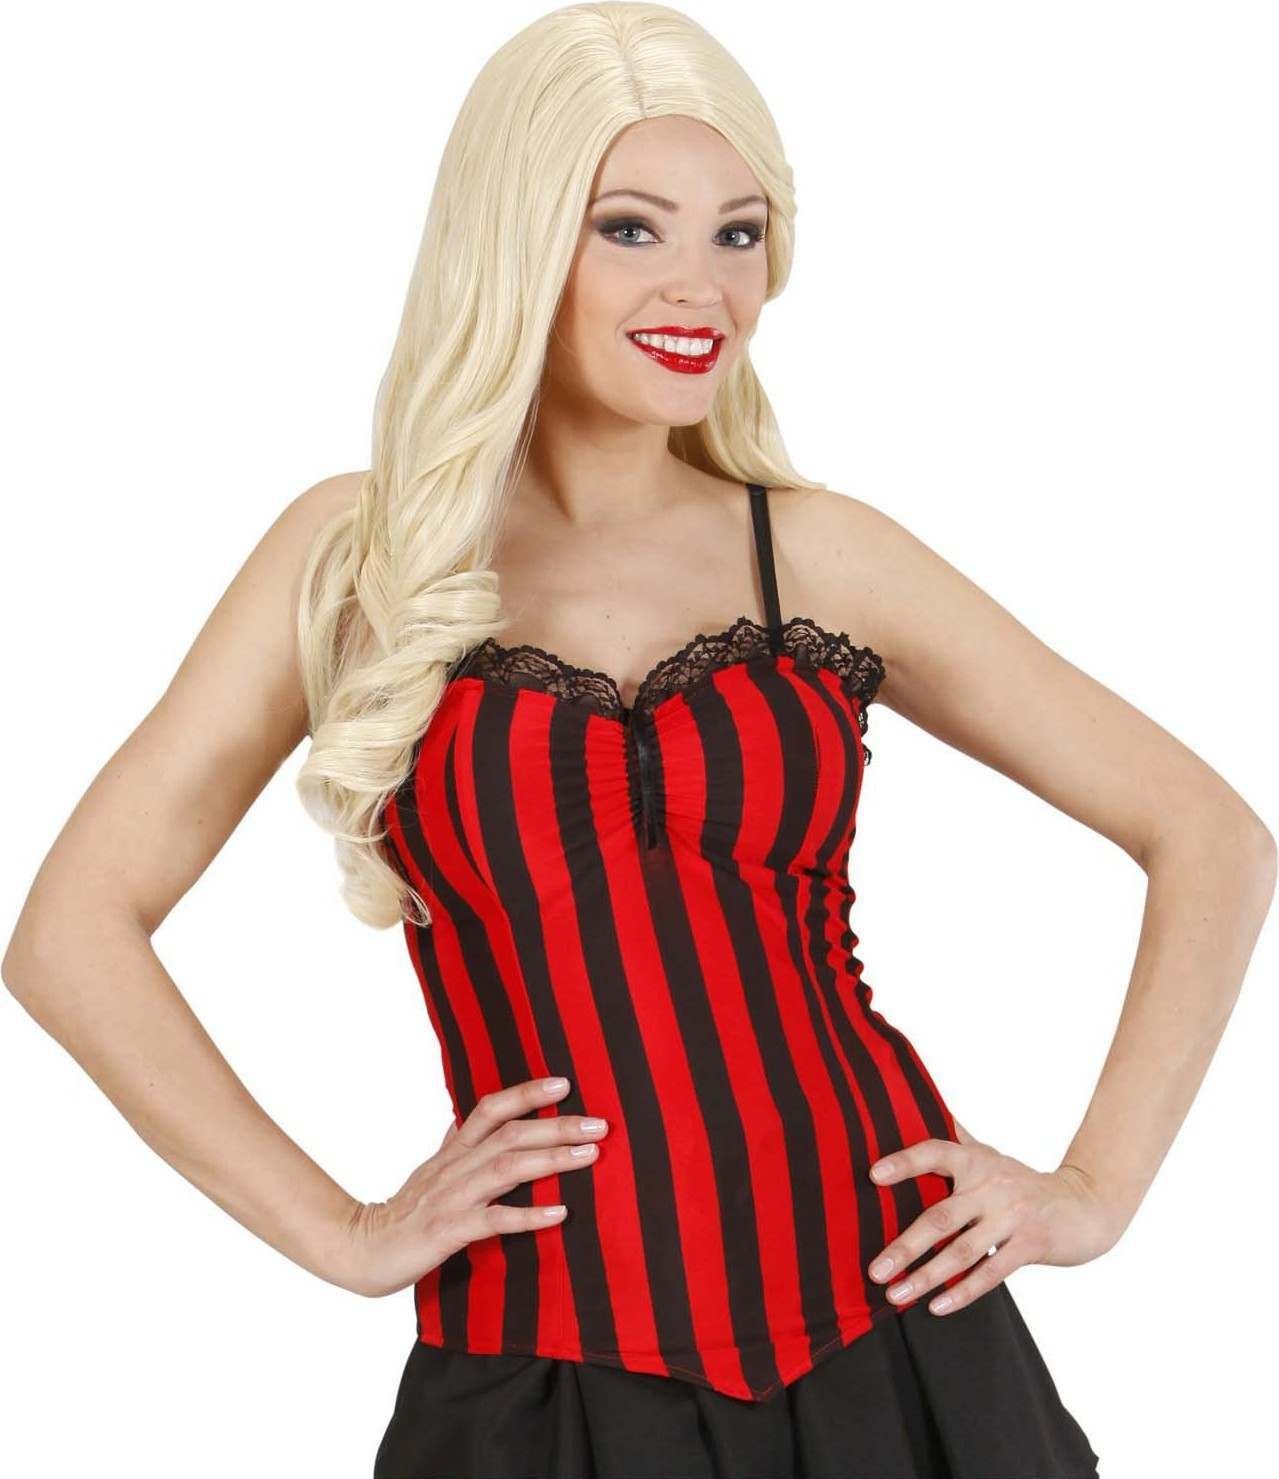 Ladies Striped Corsets Outfit - (Red, Black)